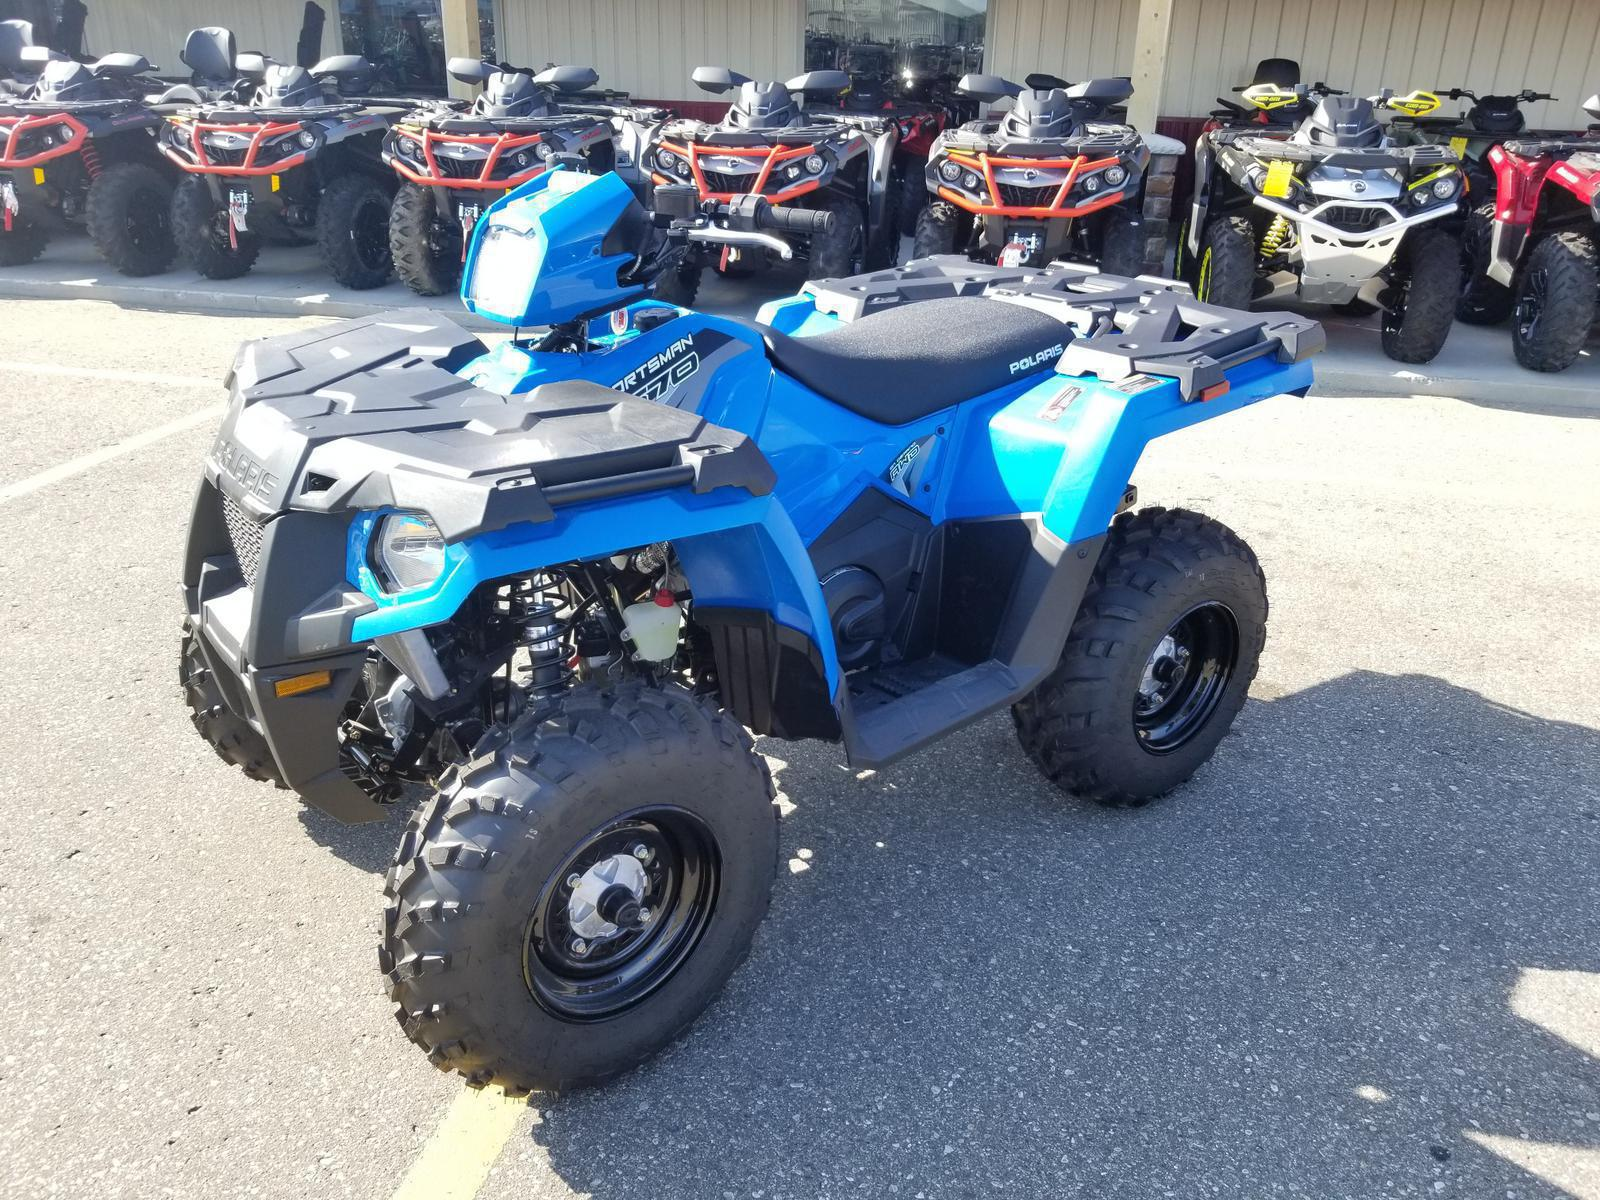 Inventory from Polaris Industries Lakeside Motor Sports